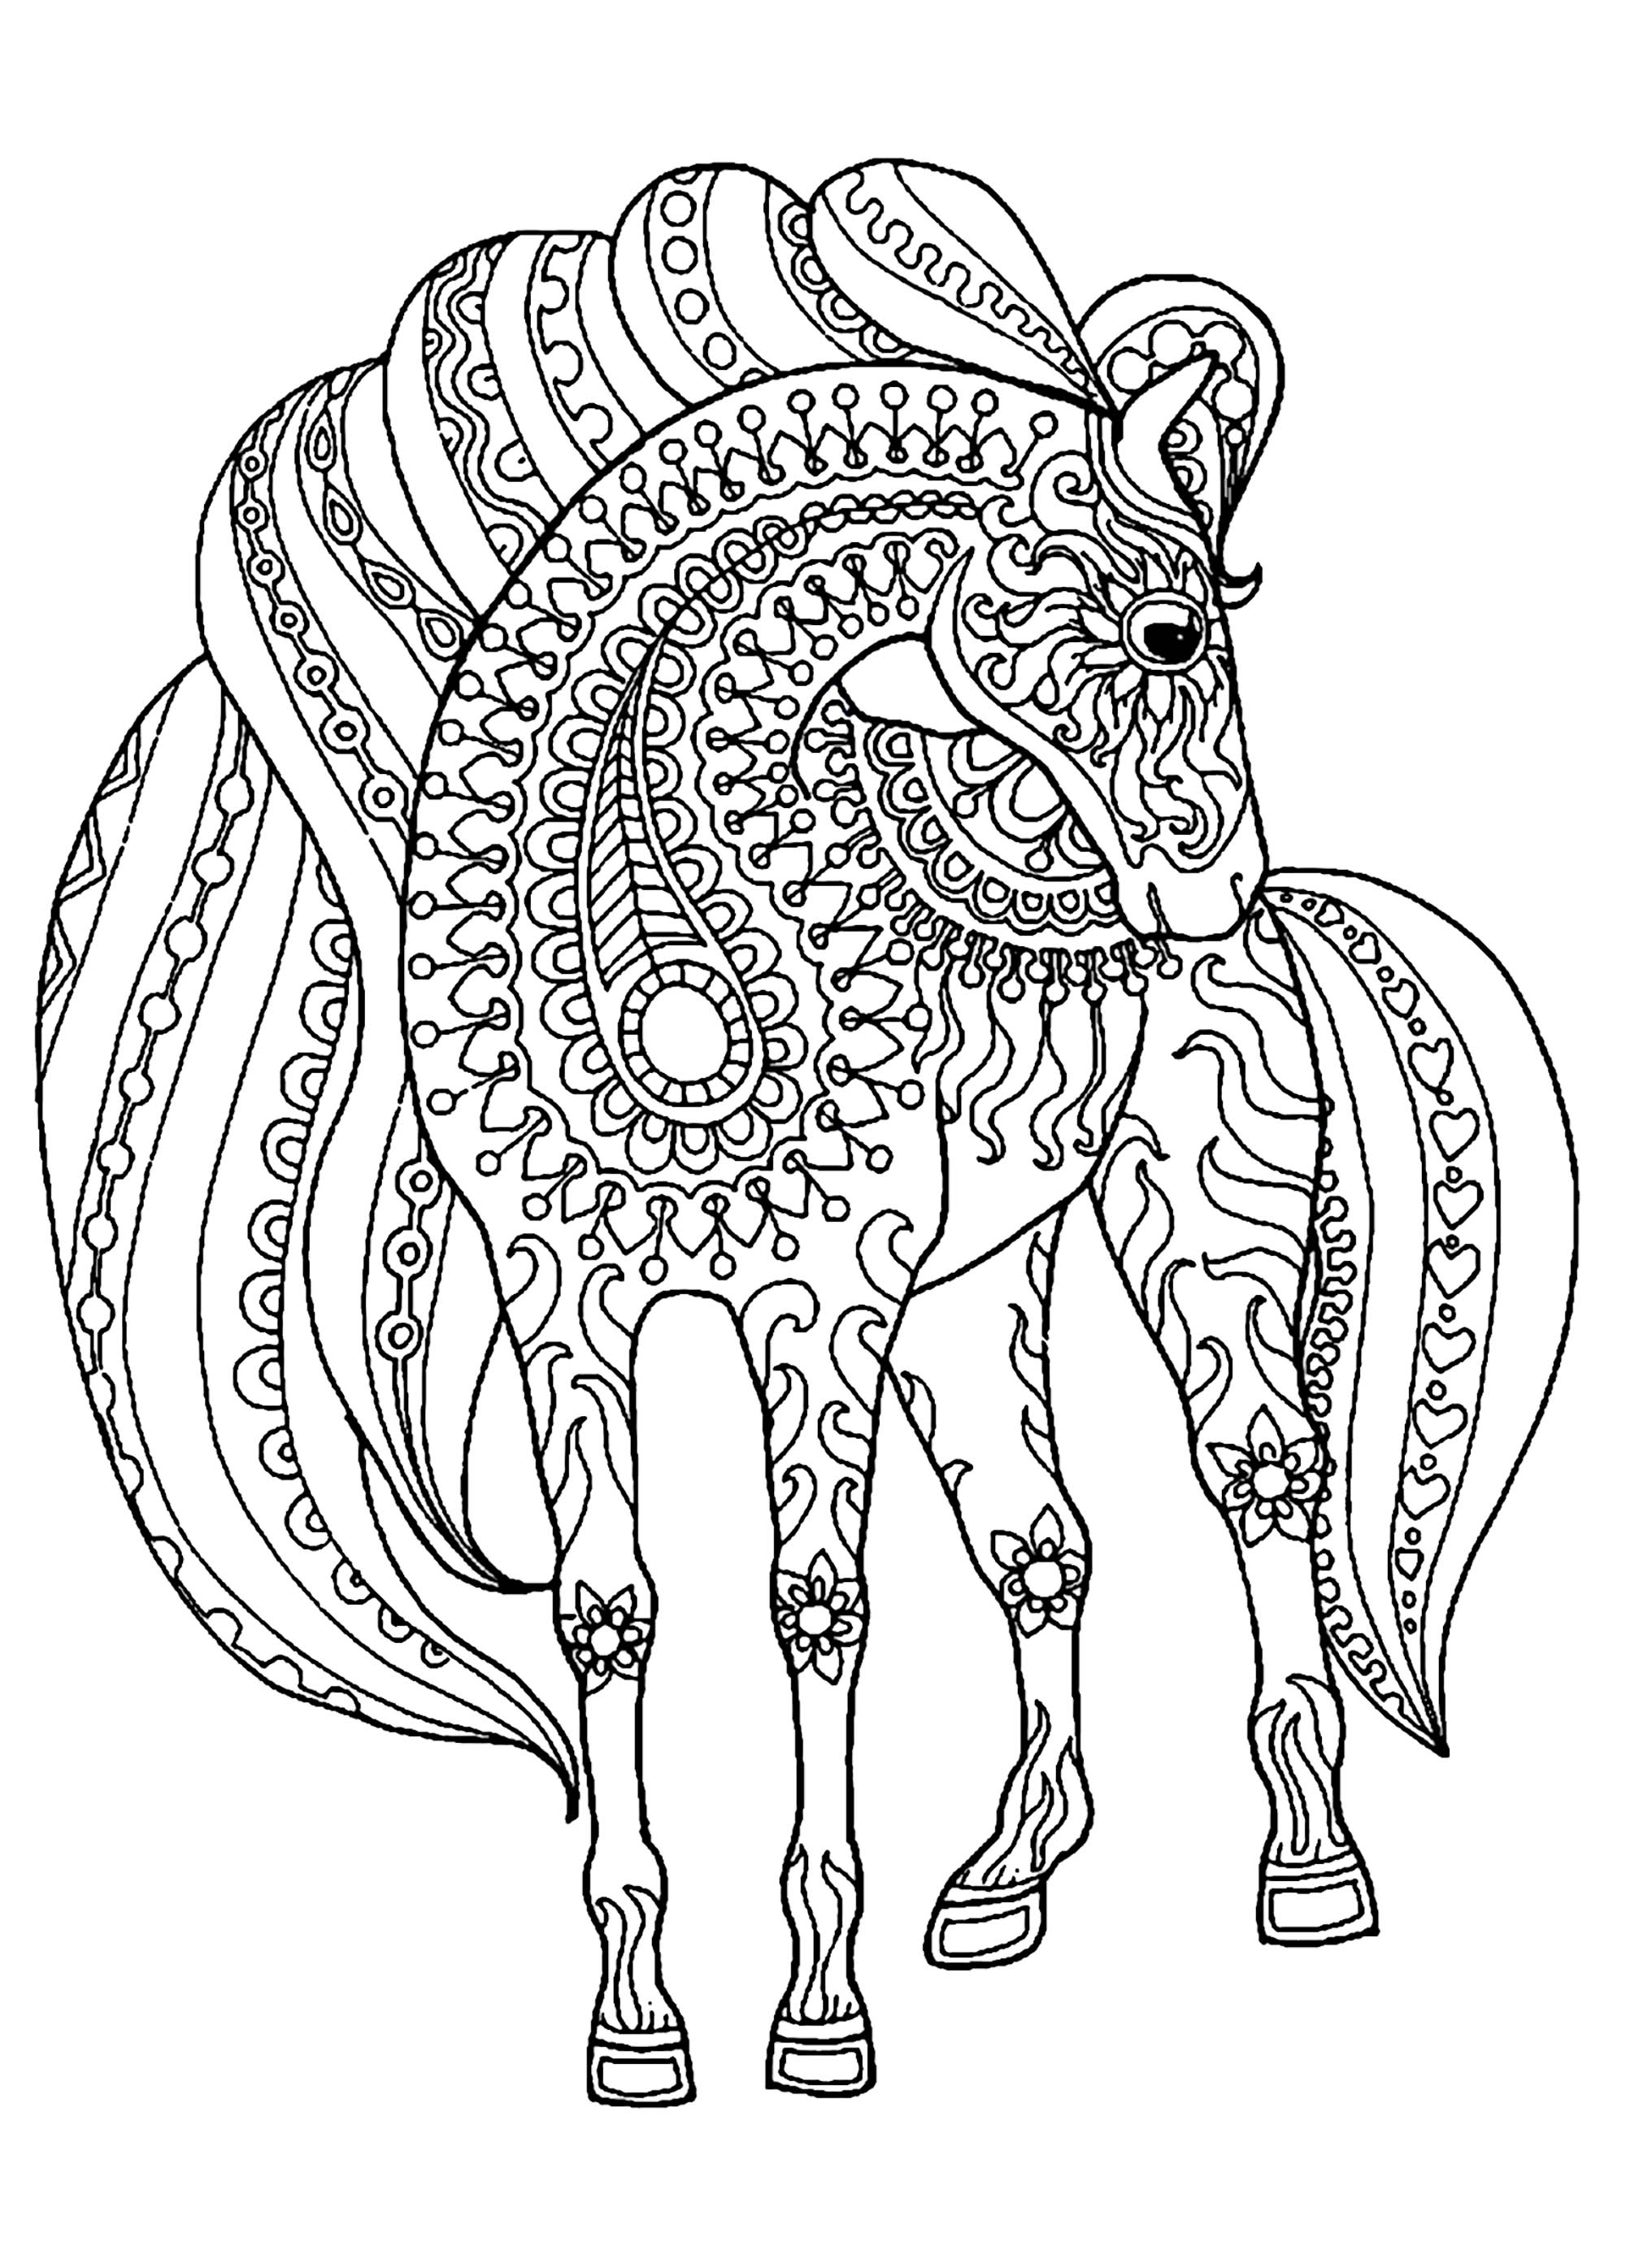 Horse simple zentangle patterns